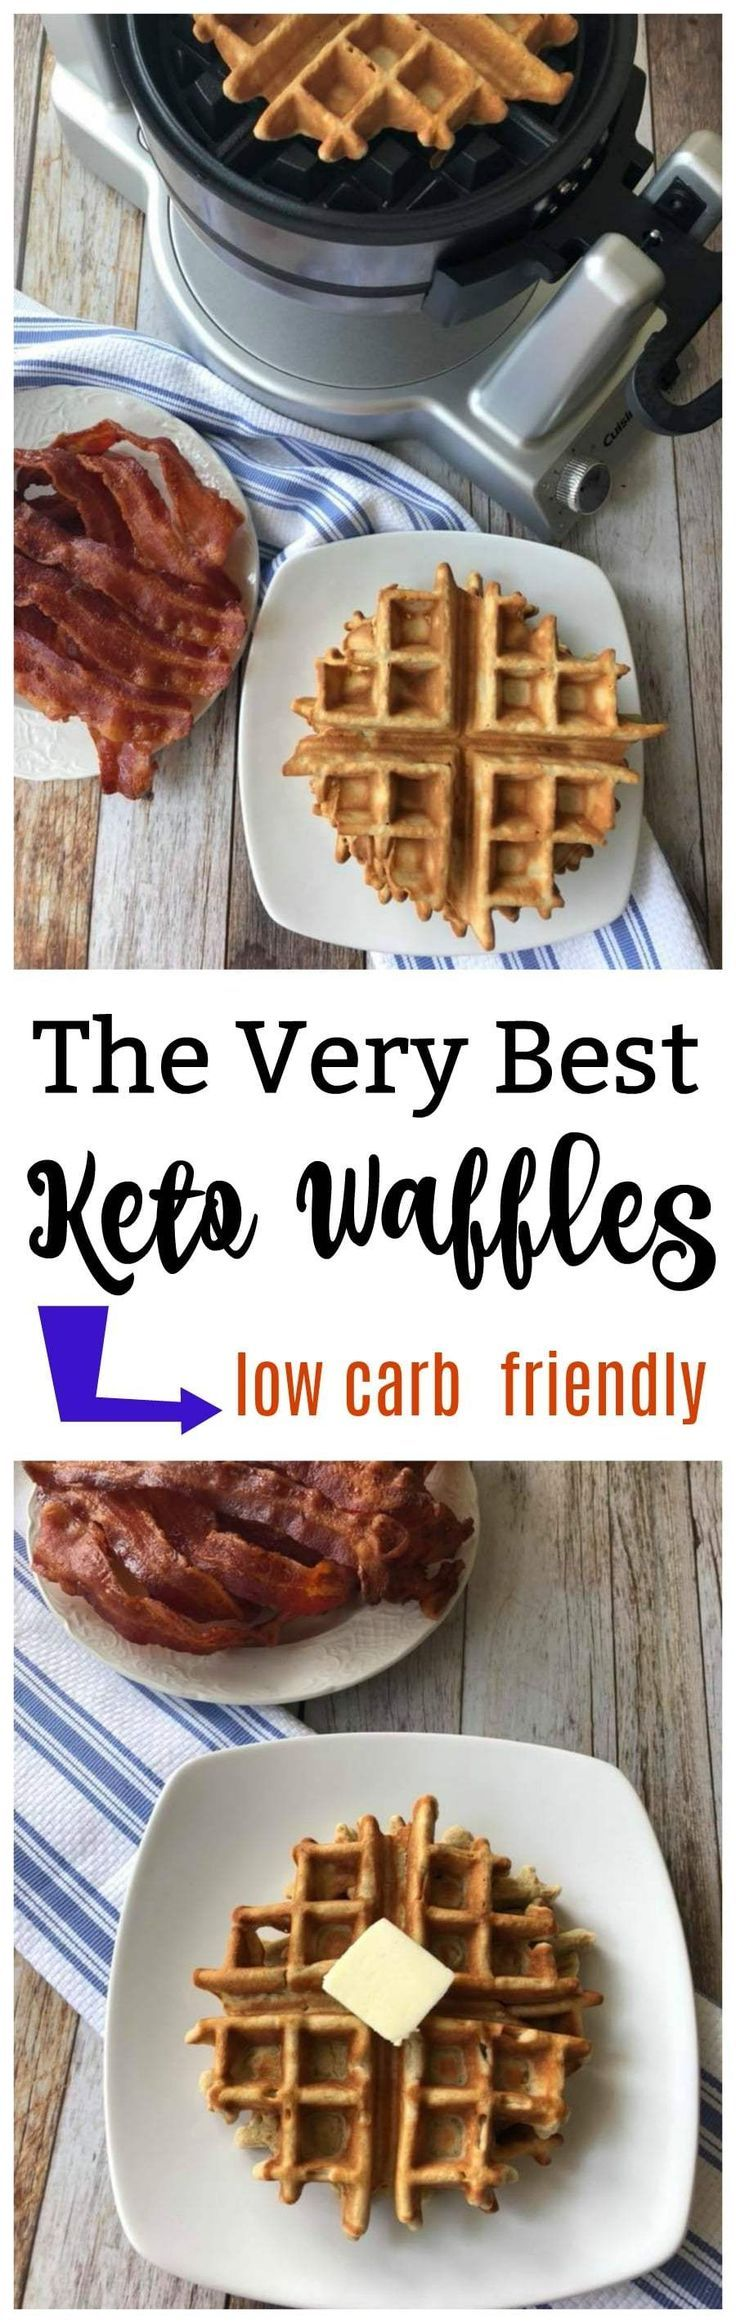 The Very Best Keto Waffles (low carb) -